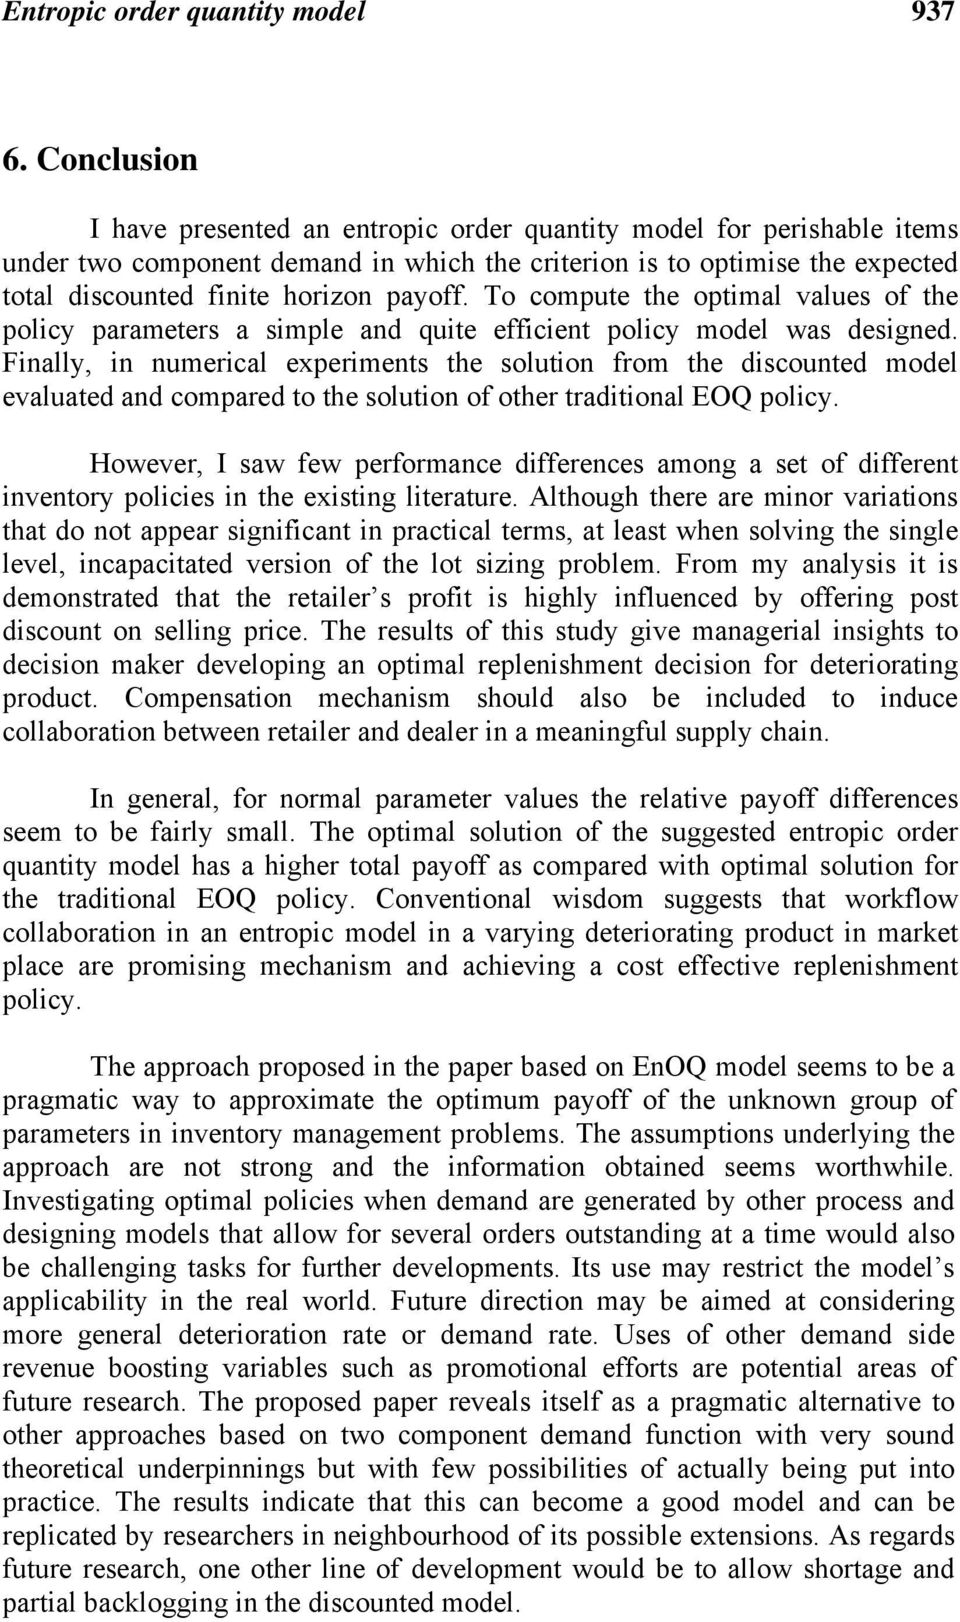 To compute the optimal values of the policy parameters a simple and quite efficient policy model was designed.